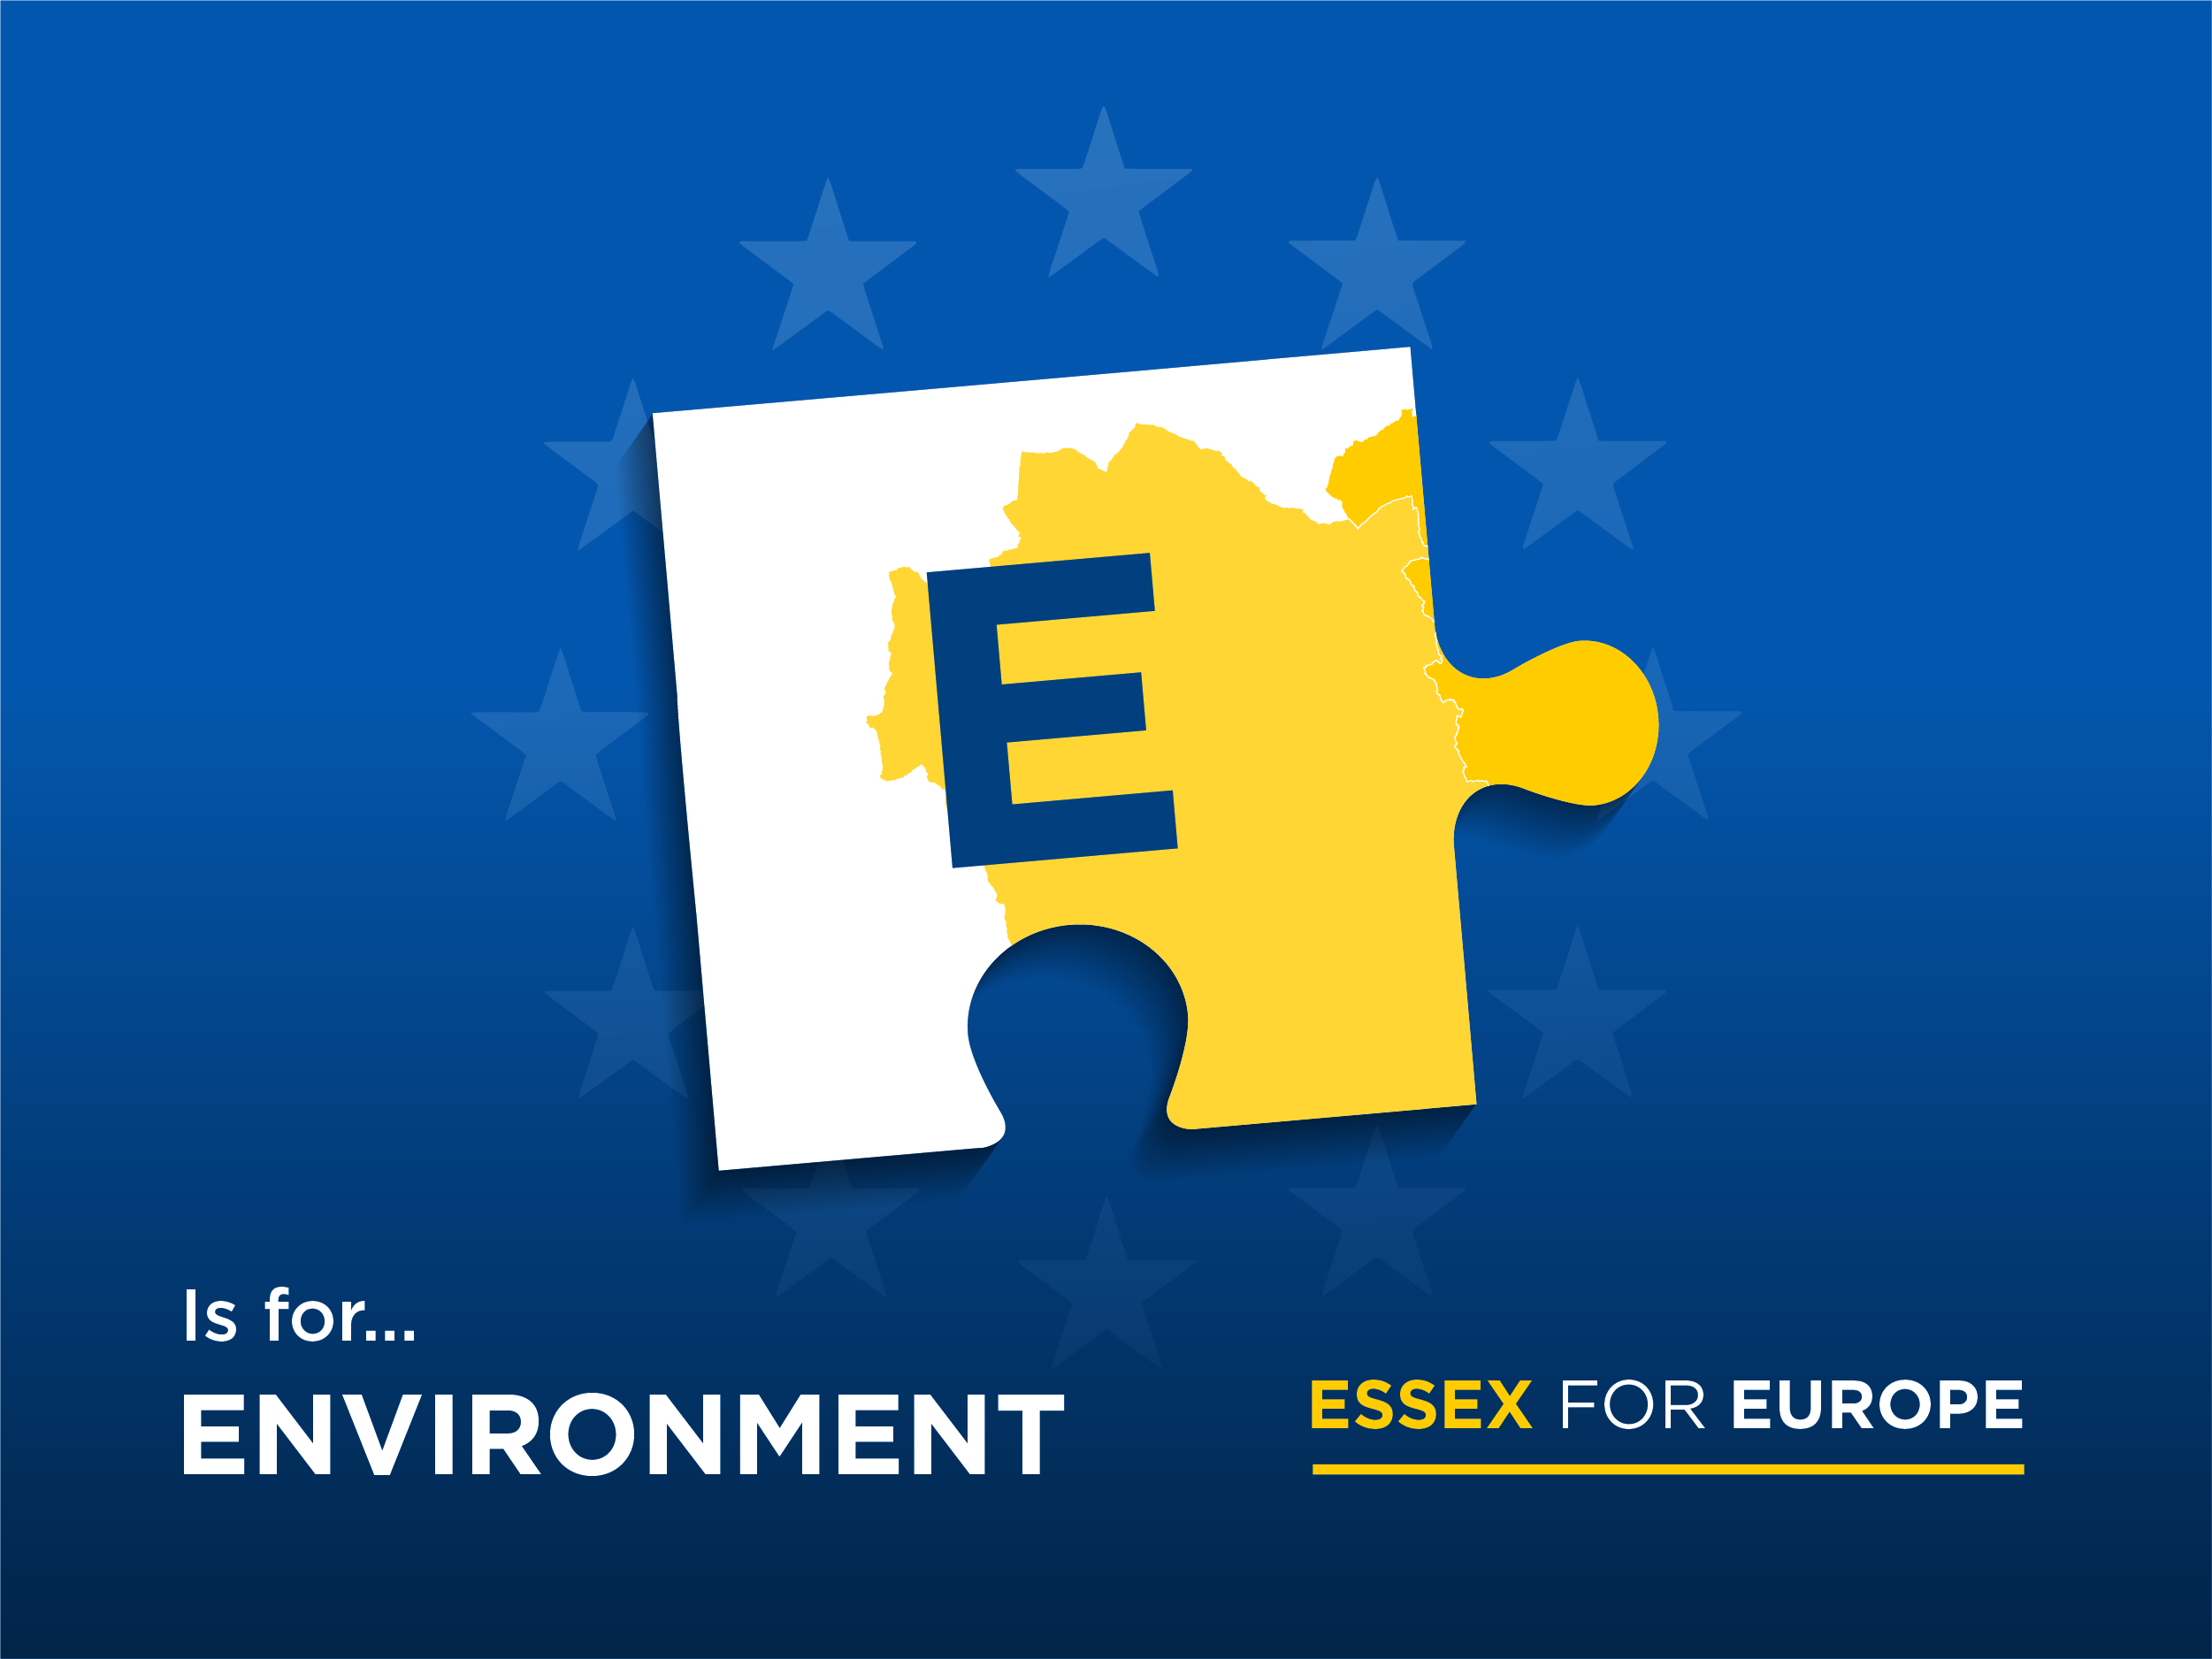 People of Essex - leaving the EU means we risk funding for the environment at the local level